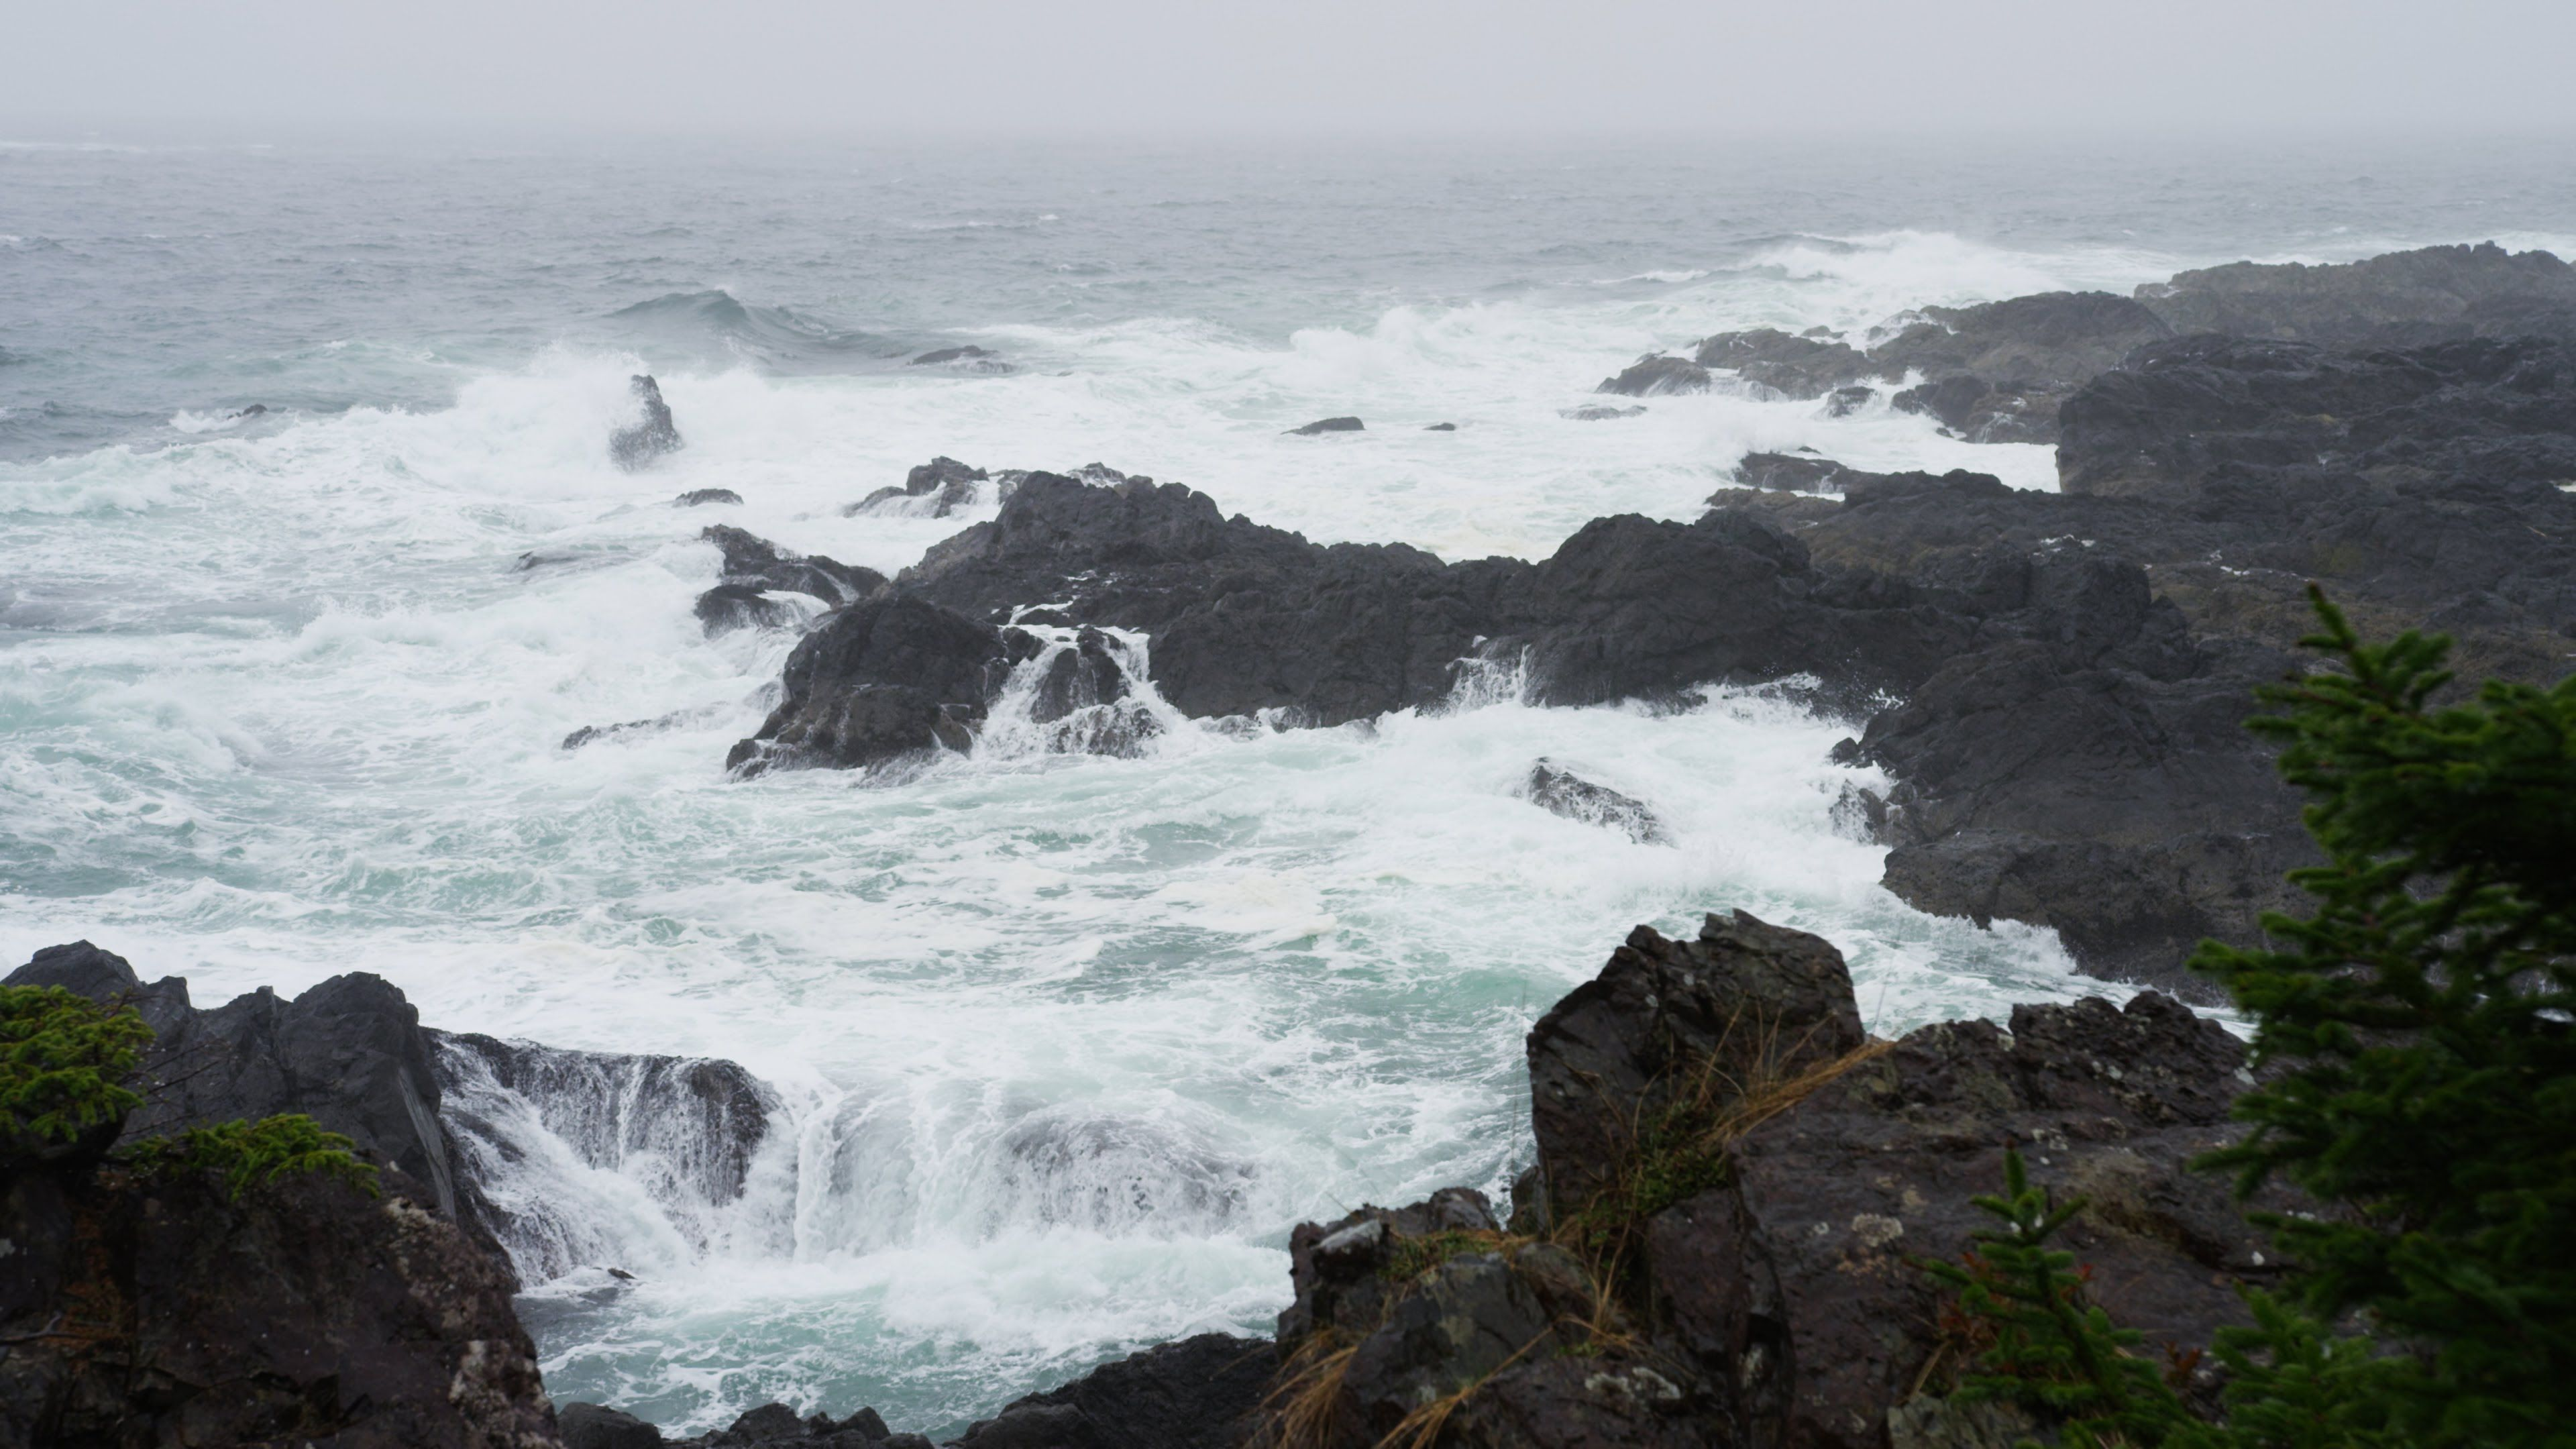 Rain Sounds And Ocean Waves Crashing On Rocks With Distant